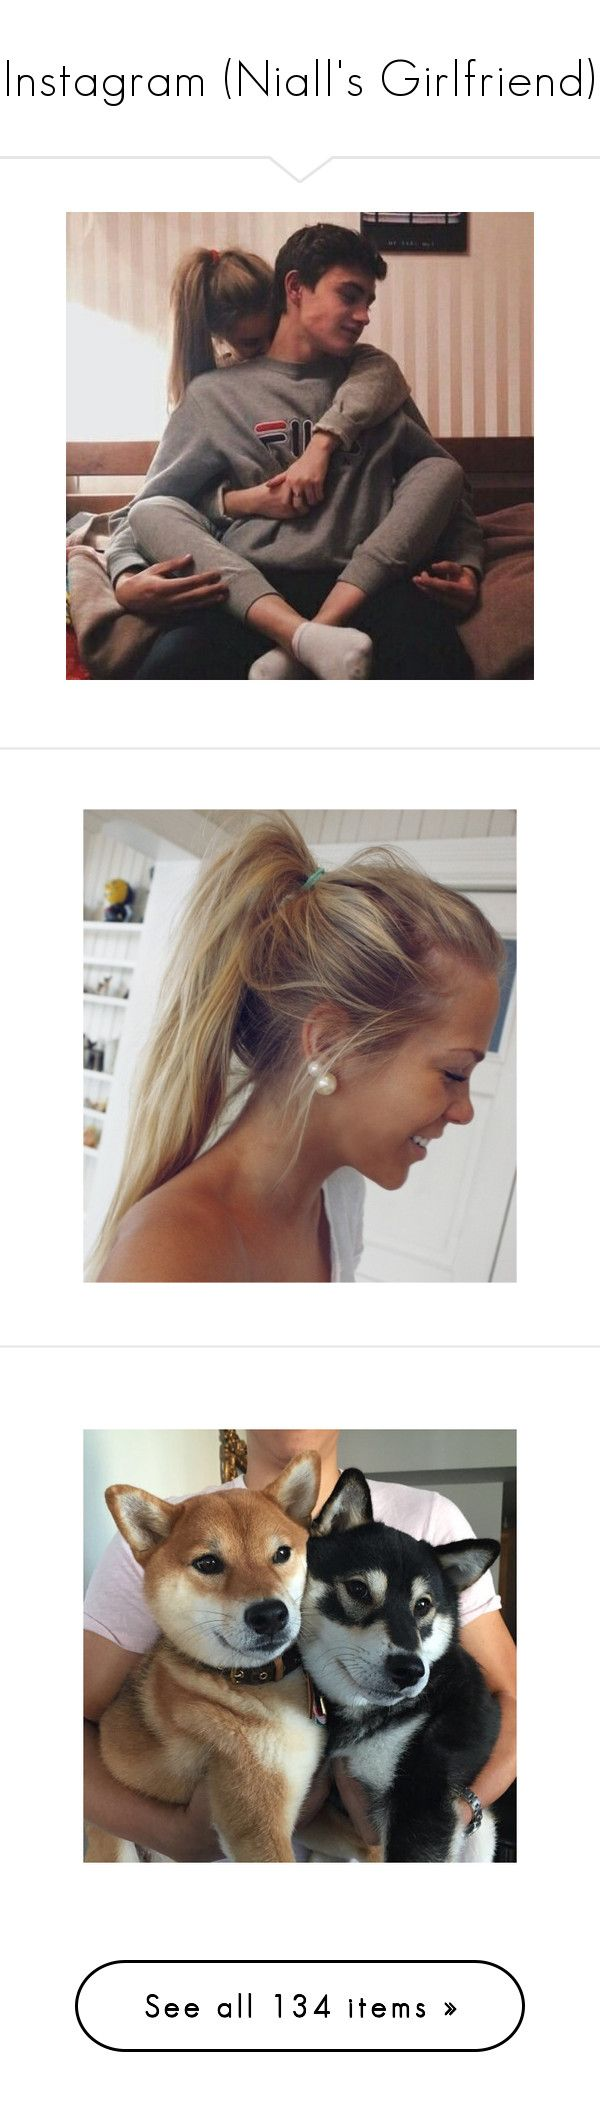 """""""Instagram (Niall's Girlfriend)"""" by cheyenne-stock ❤ liked on Polyvore featuring backgrounds, hair, pictures, hairstyles, hair styles, people, couples, fillers // backgrounds, pics and girls"""